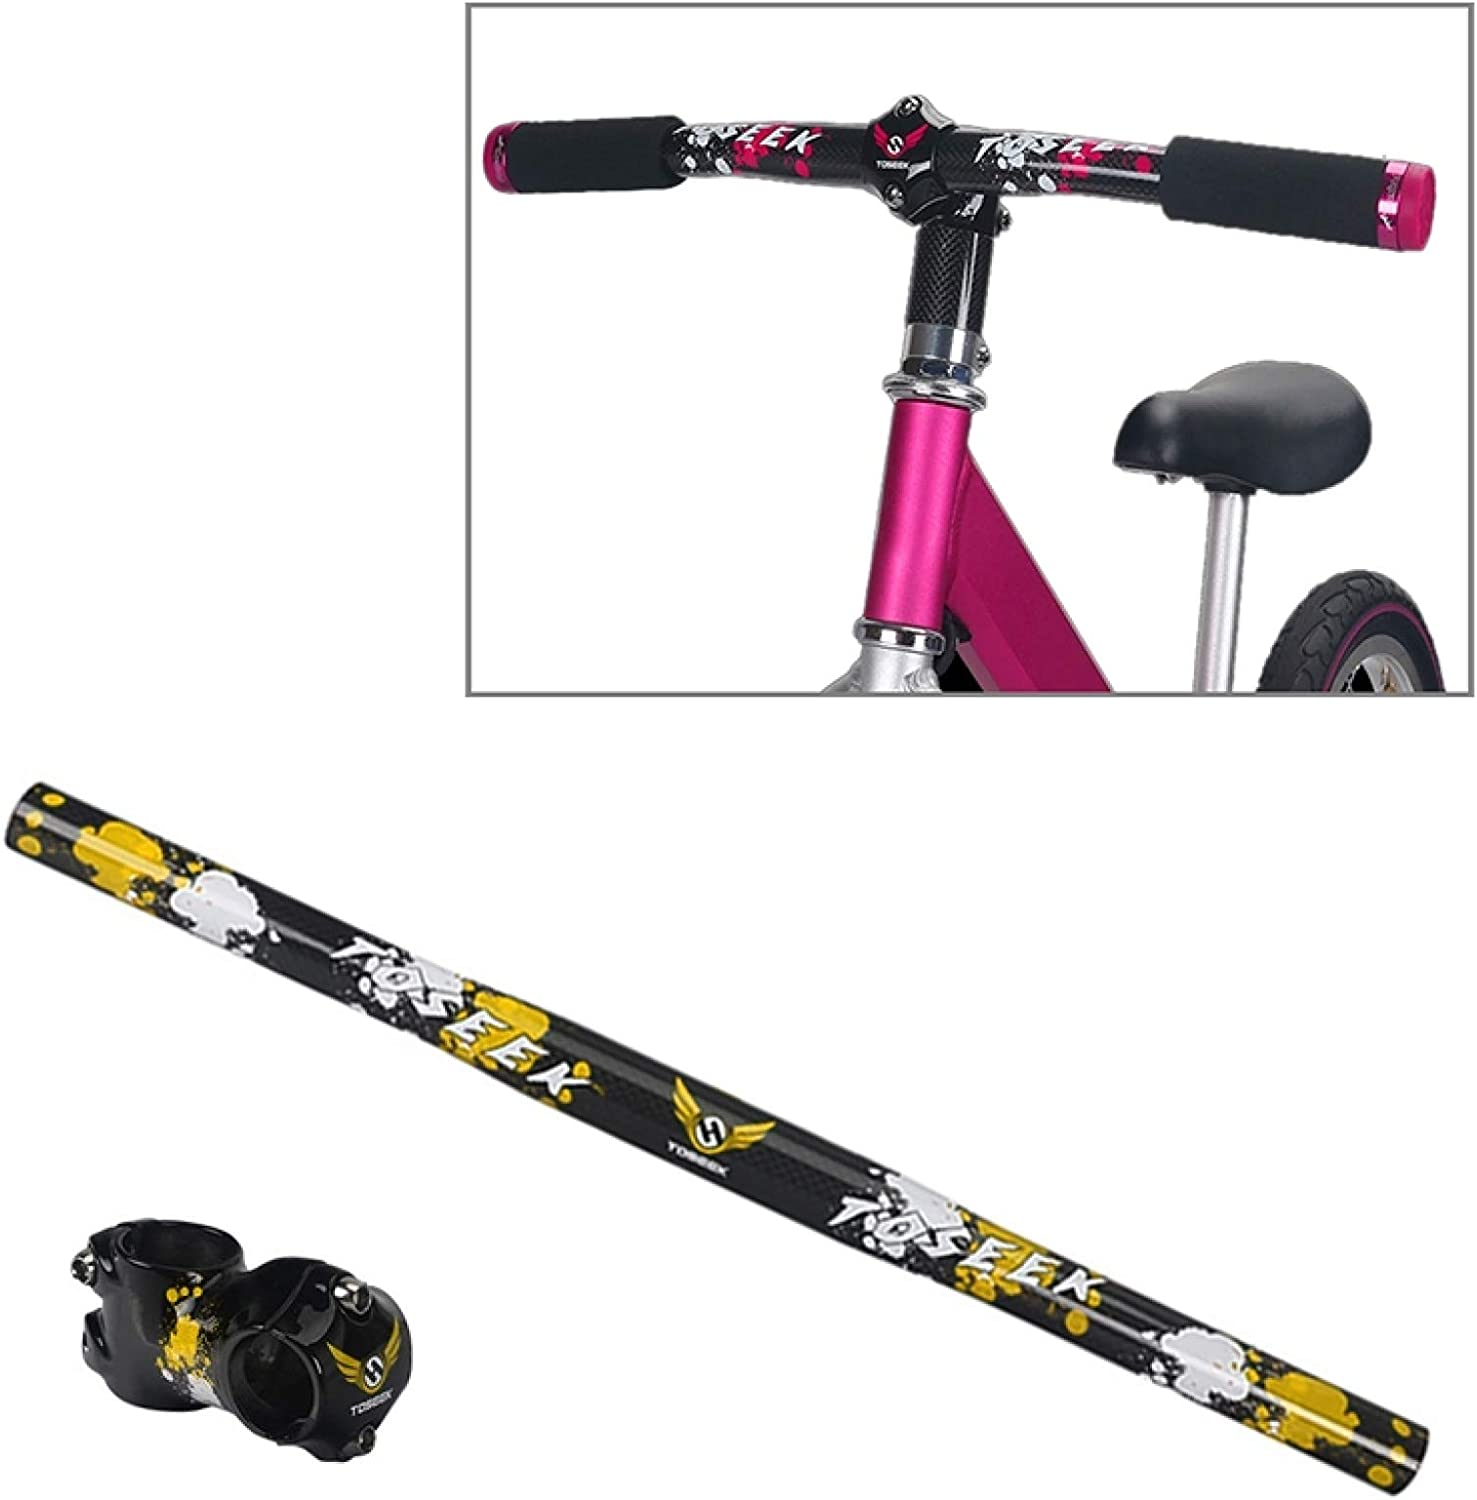 Jiangym Sports Accessories Limited Special Price TOSEEK Carbon Max 80% OFF Fiber Balance Children